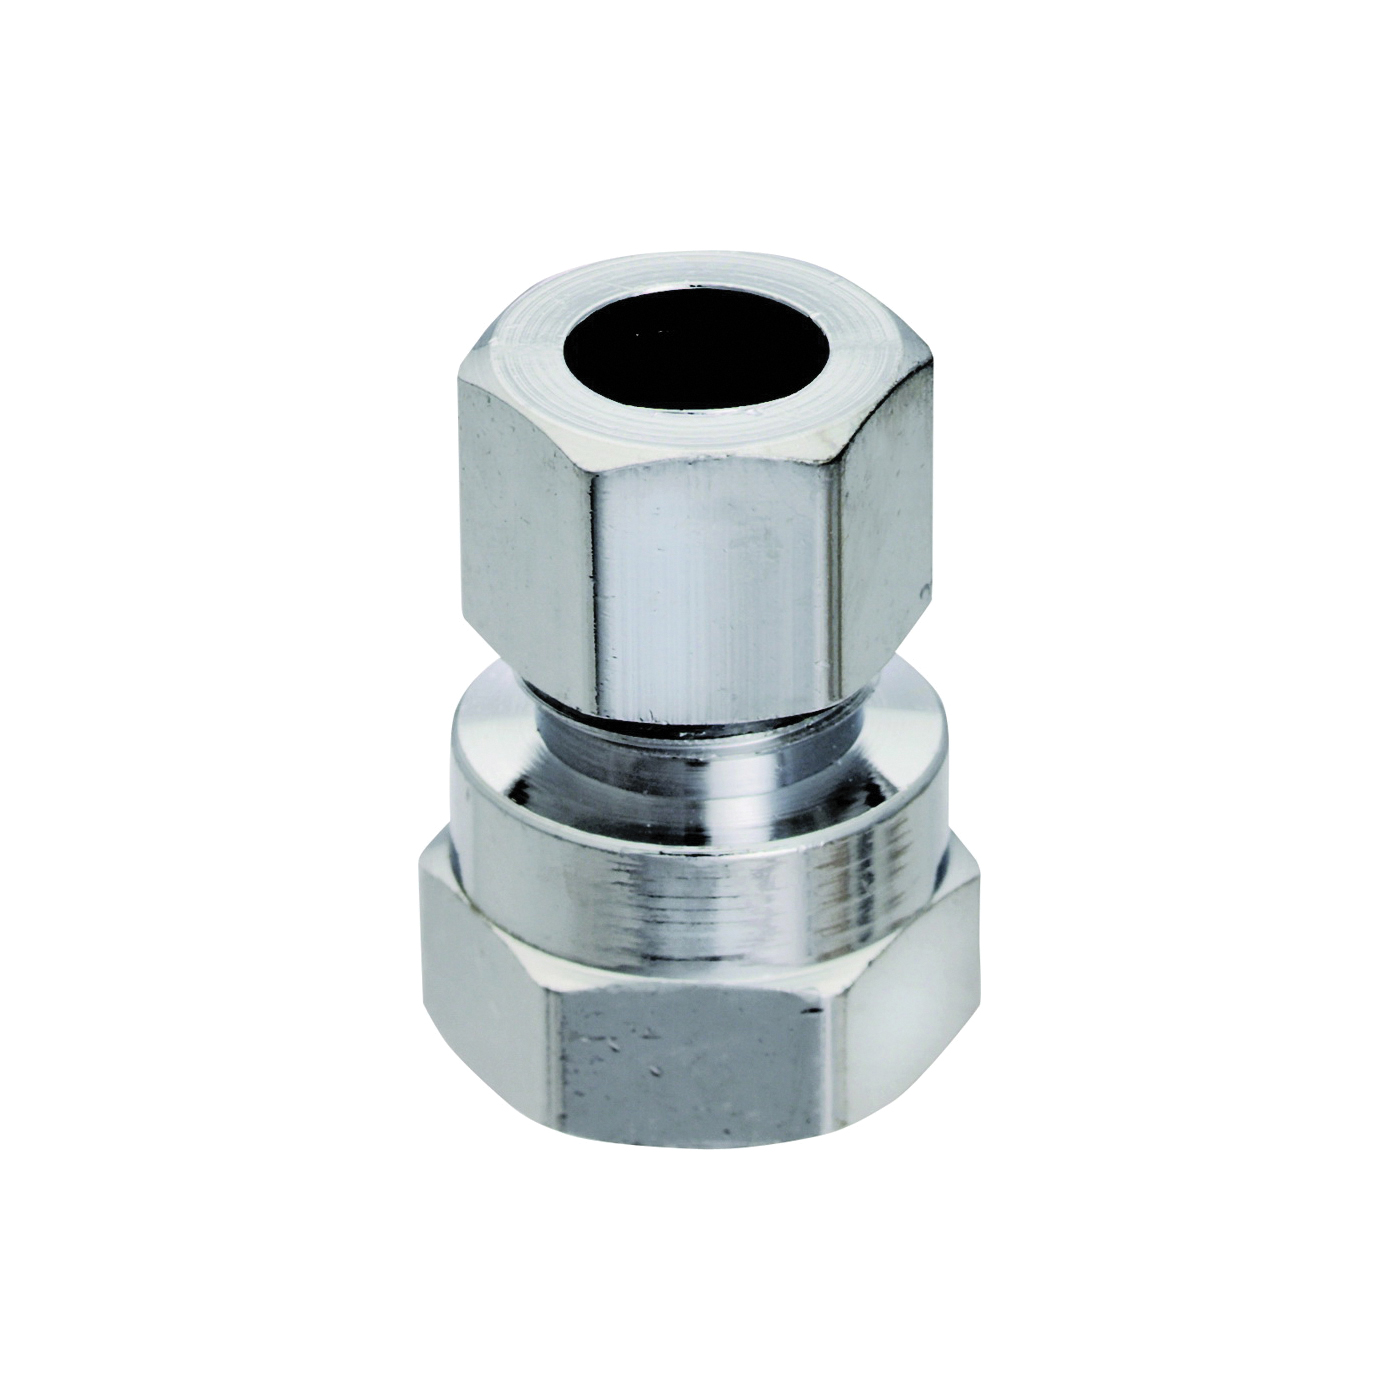 Picture of Plumb Pak PP73PCLF Straight Adapter, 1/2 x 3/8 in, FIP x Compression, Chrome